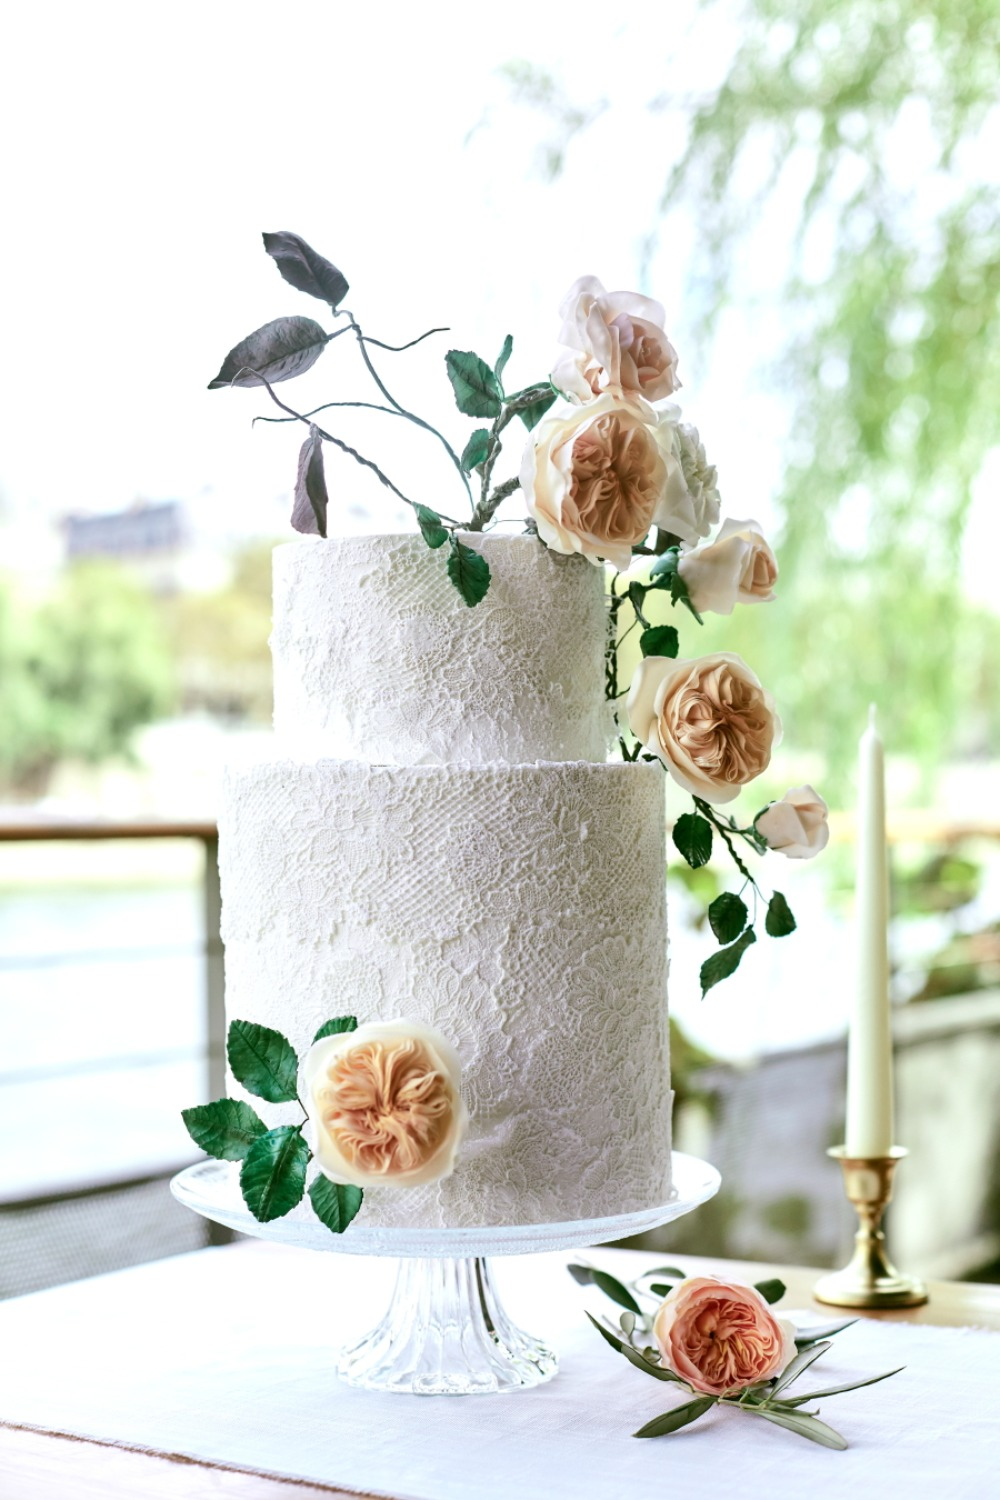 Lace wedding cake with florals